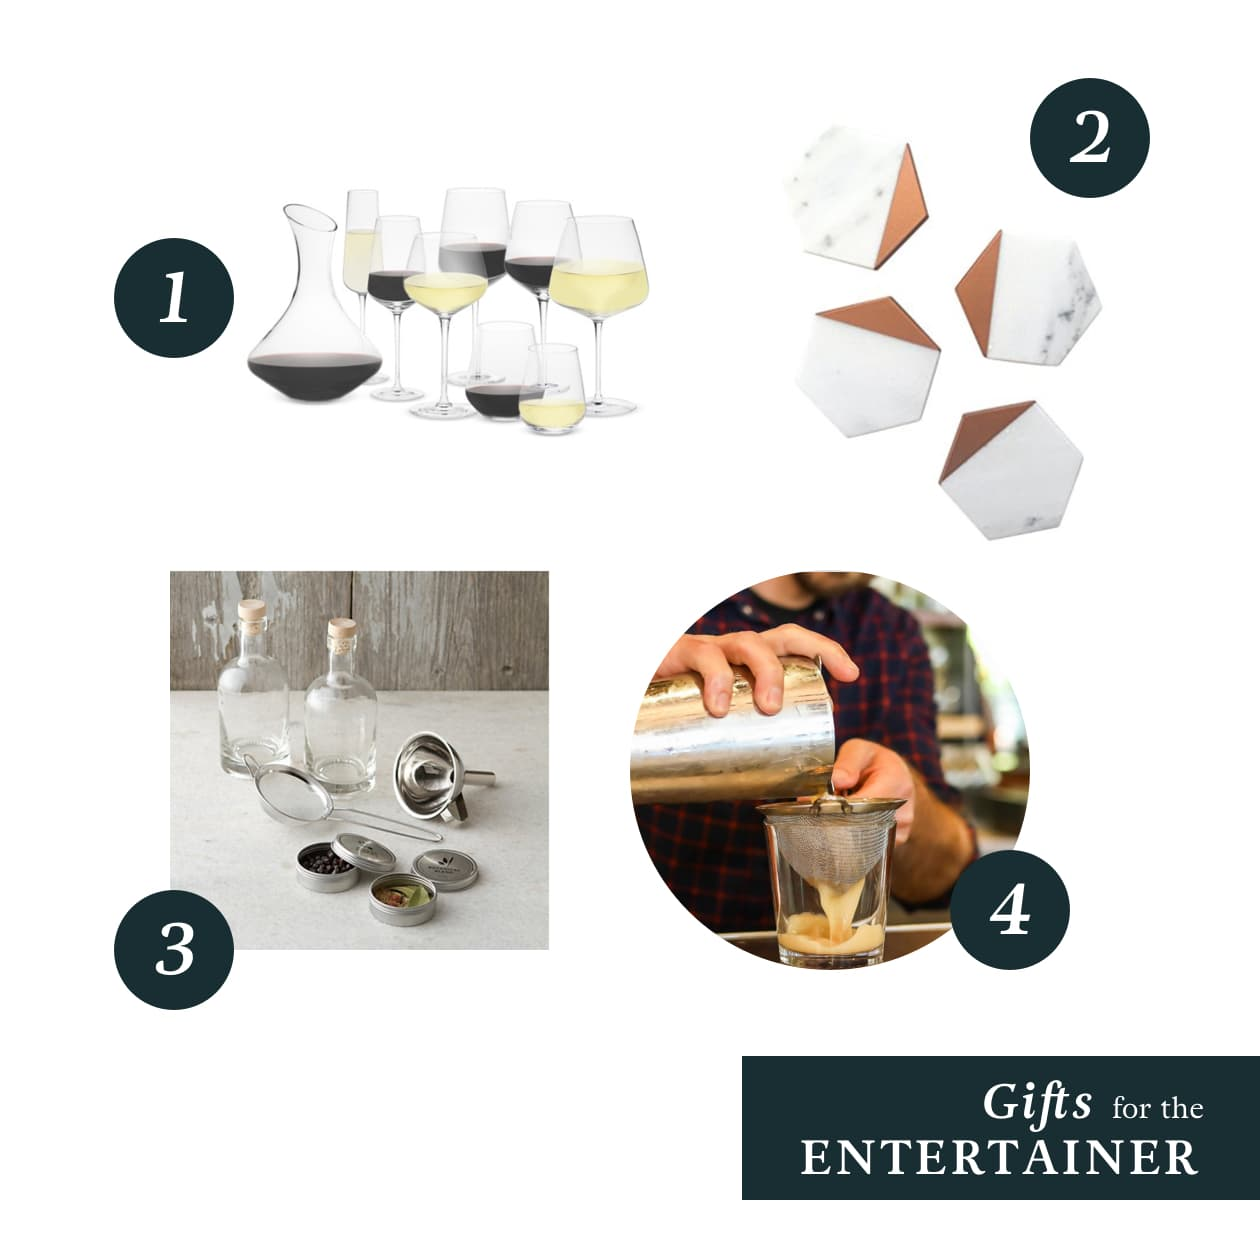 2017 WineCountry Holiday Gift Guide - Gifts for the Entertainer